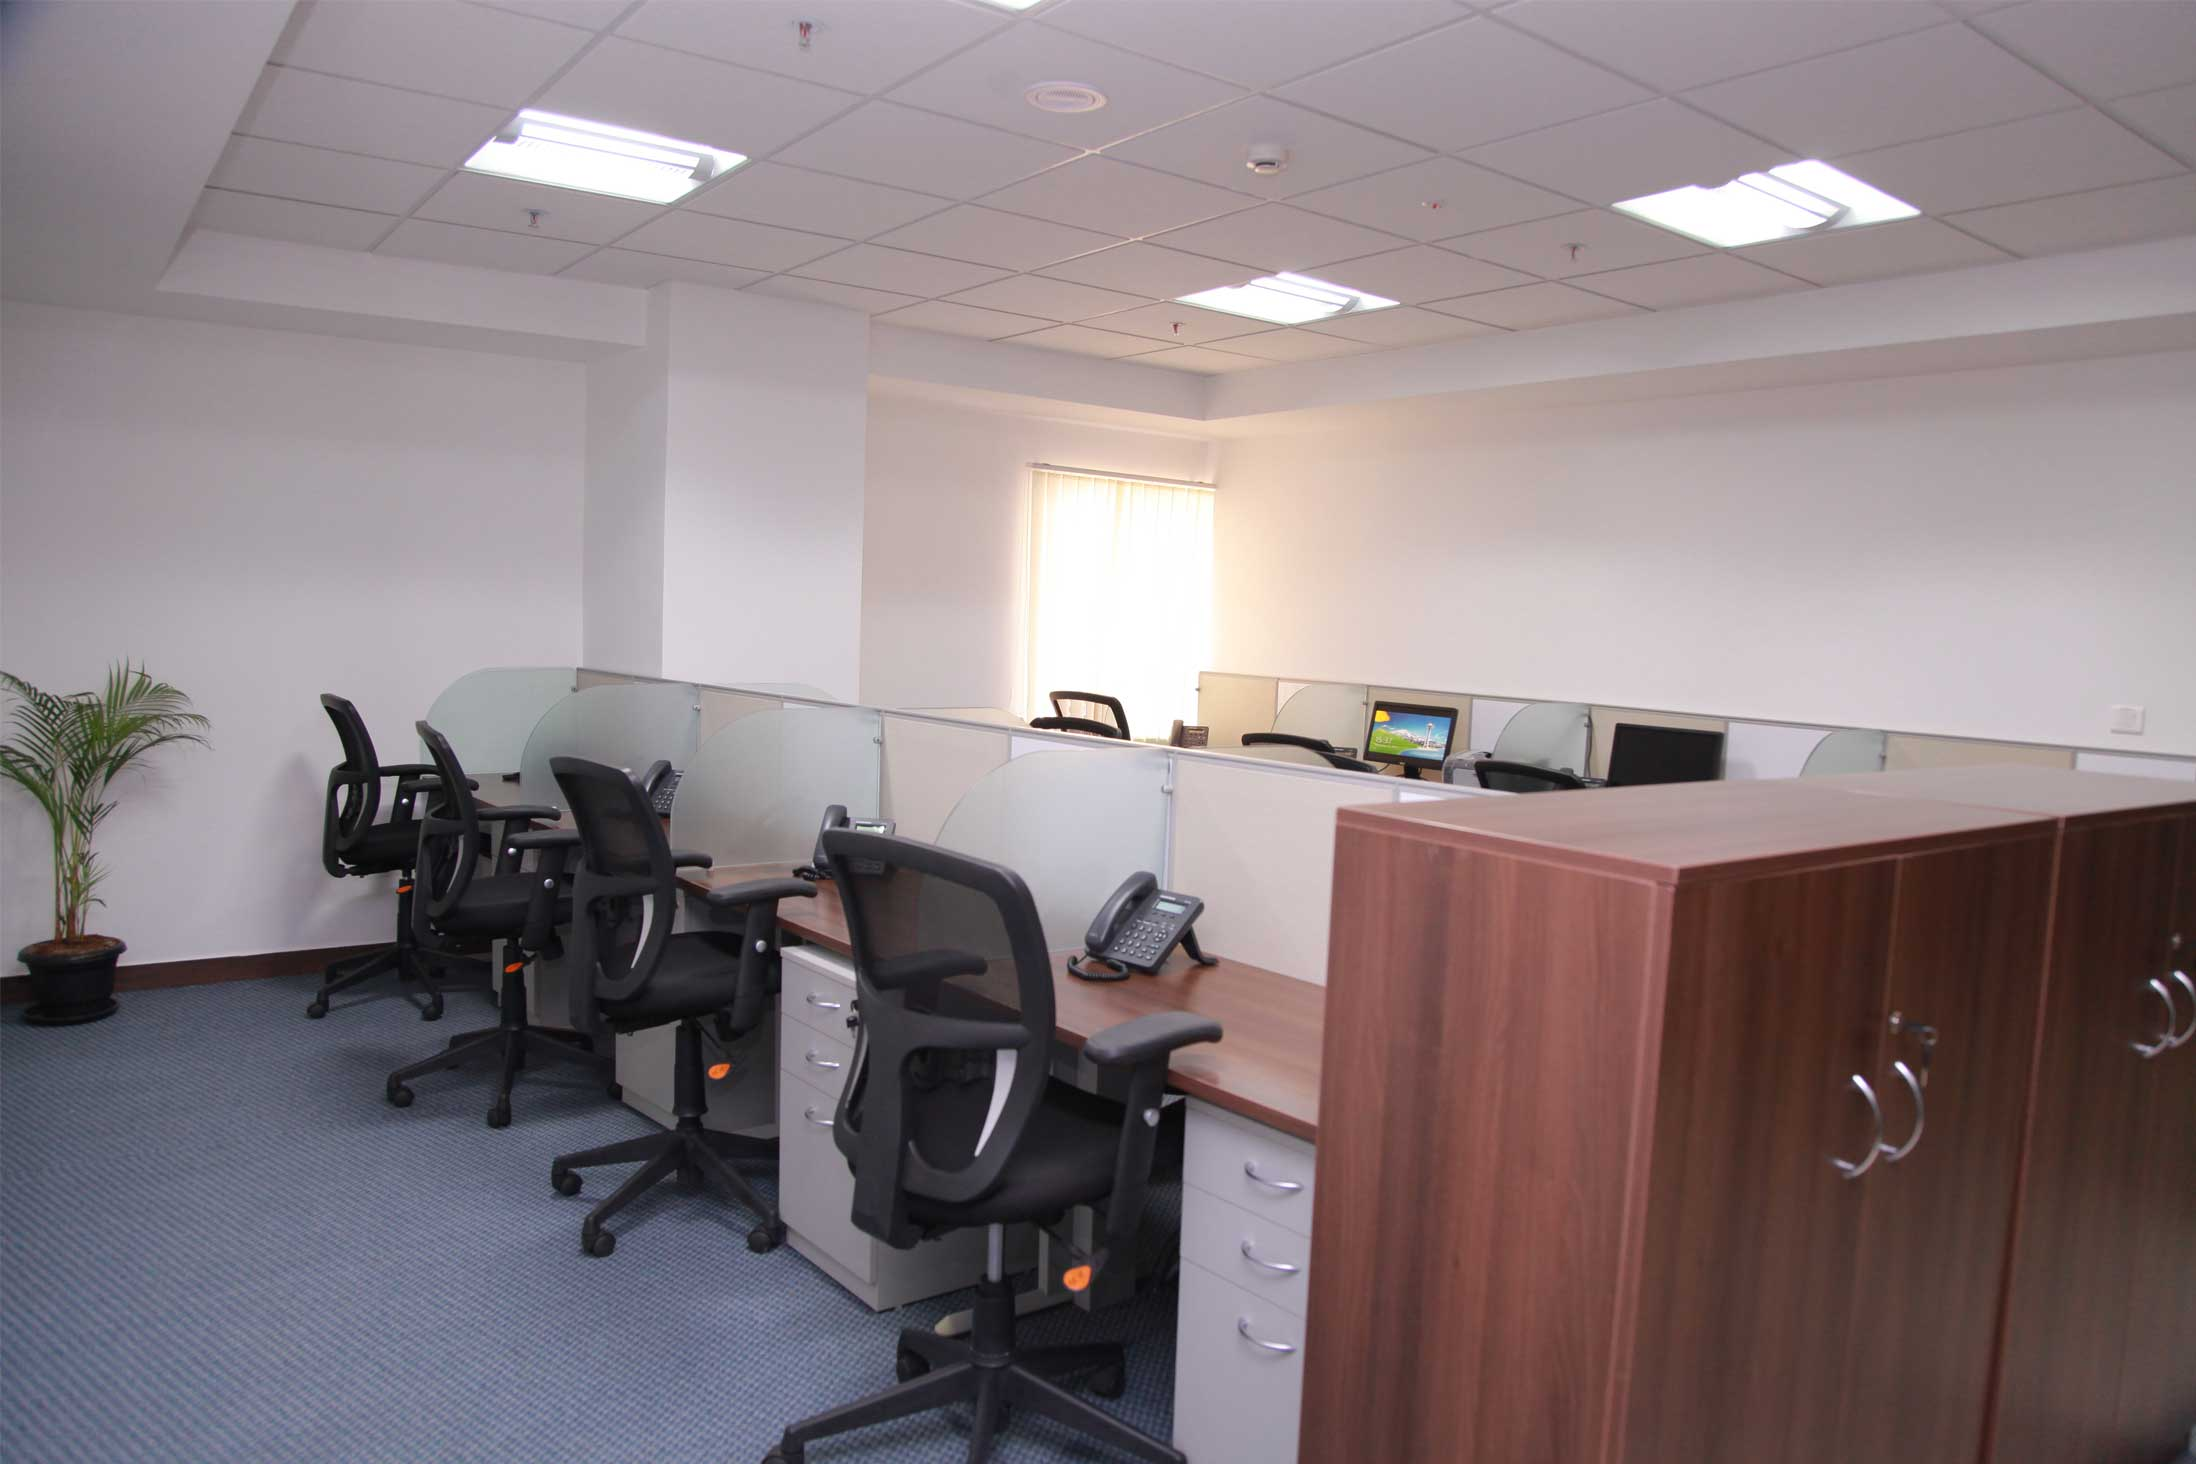 Hyderabad, Bengaluru Still Most Energetic In Office Space